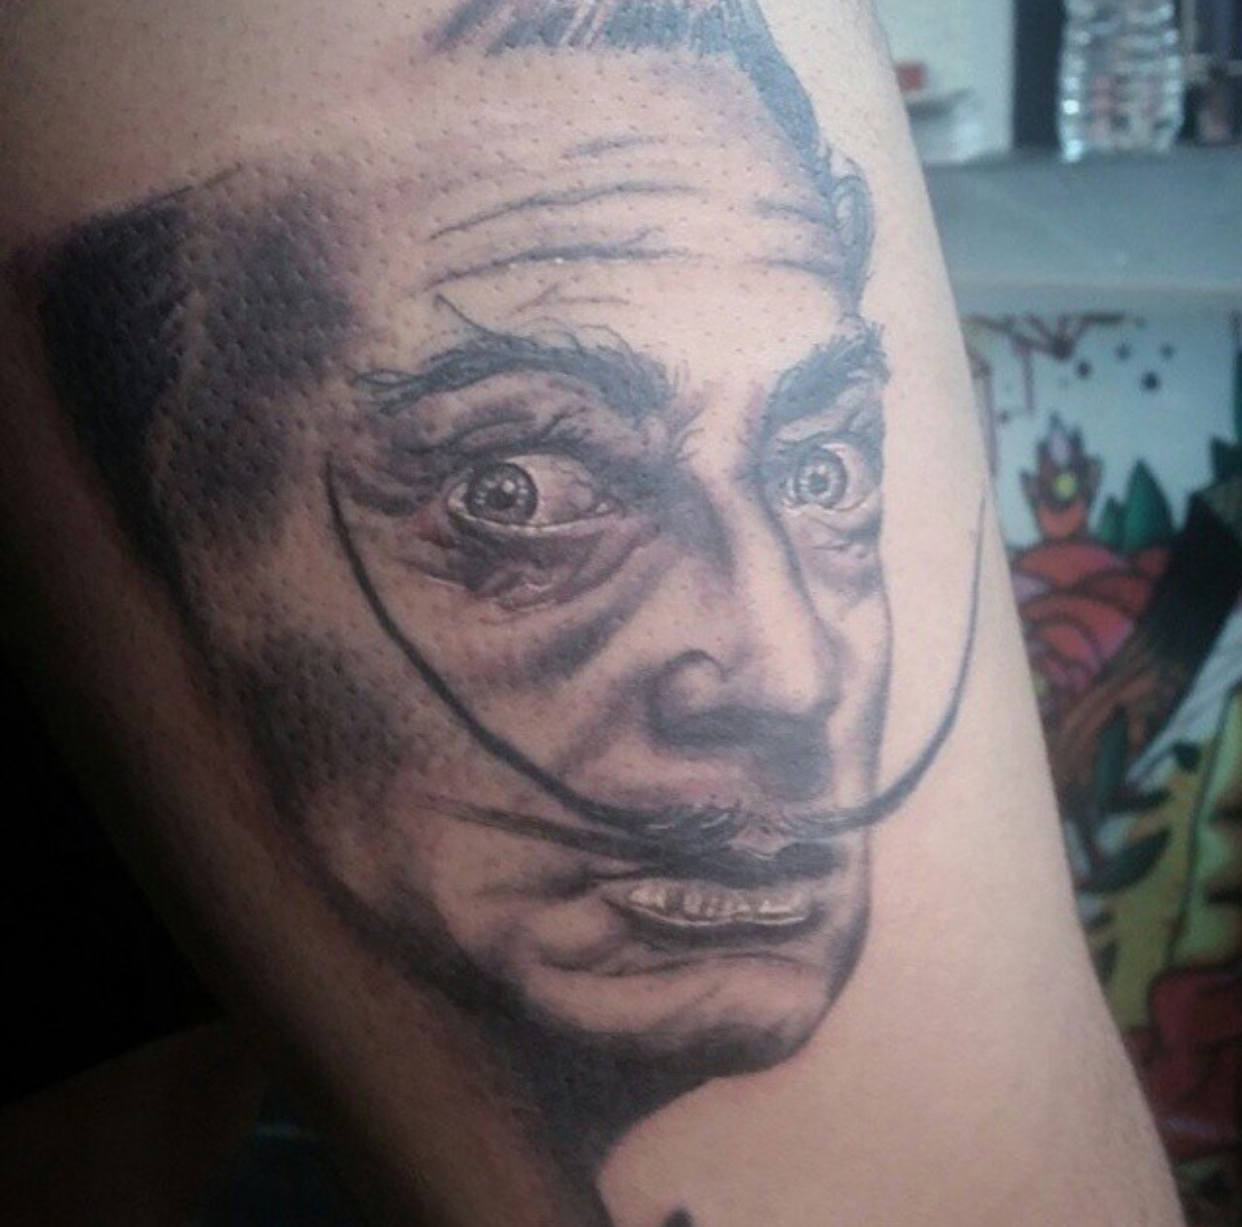 ARMANDO - TATTOOS BY LOU KENDALL